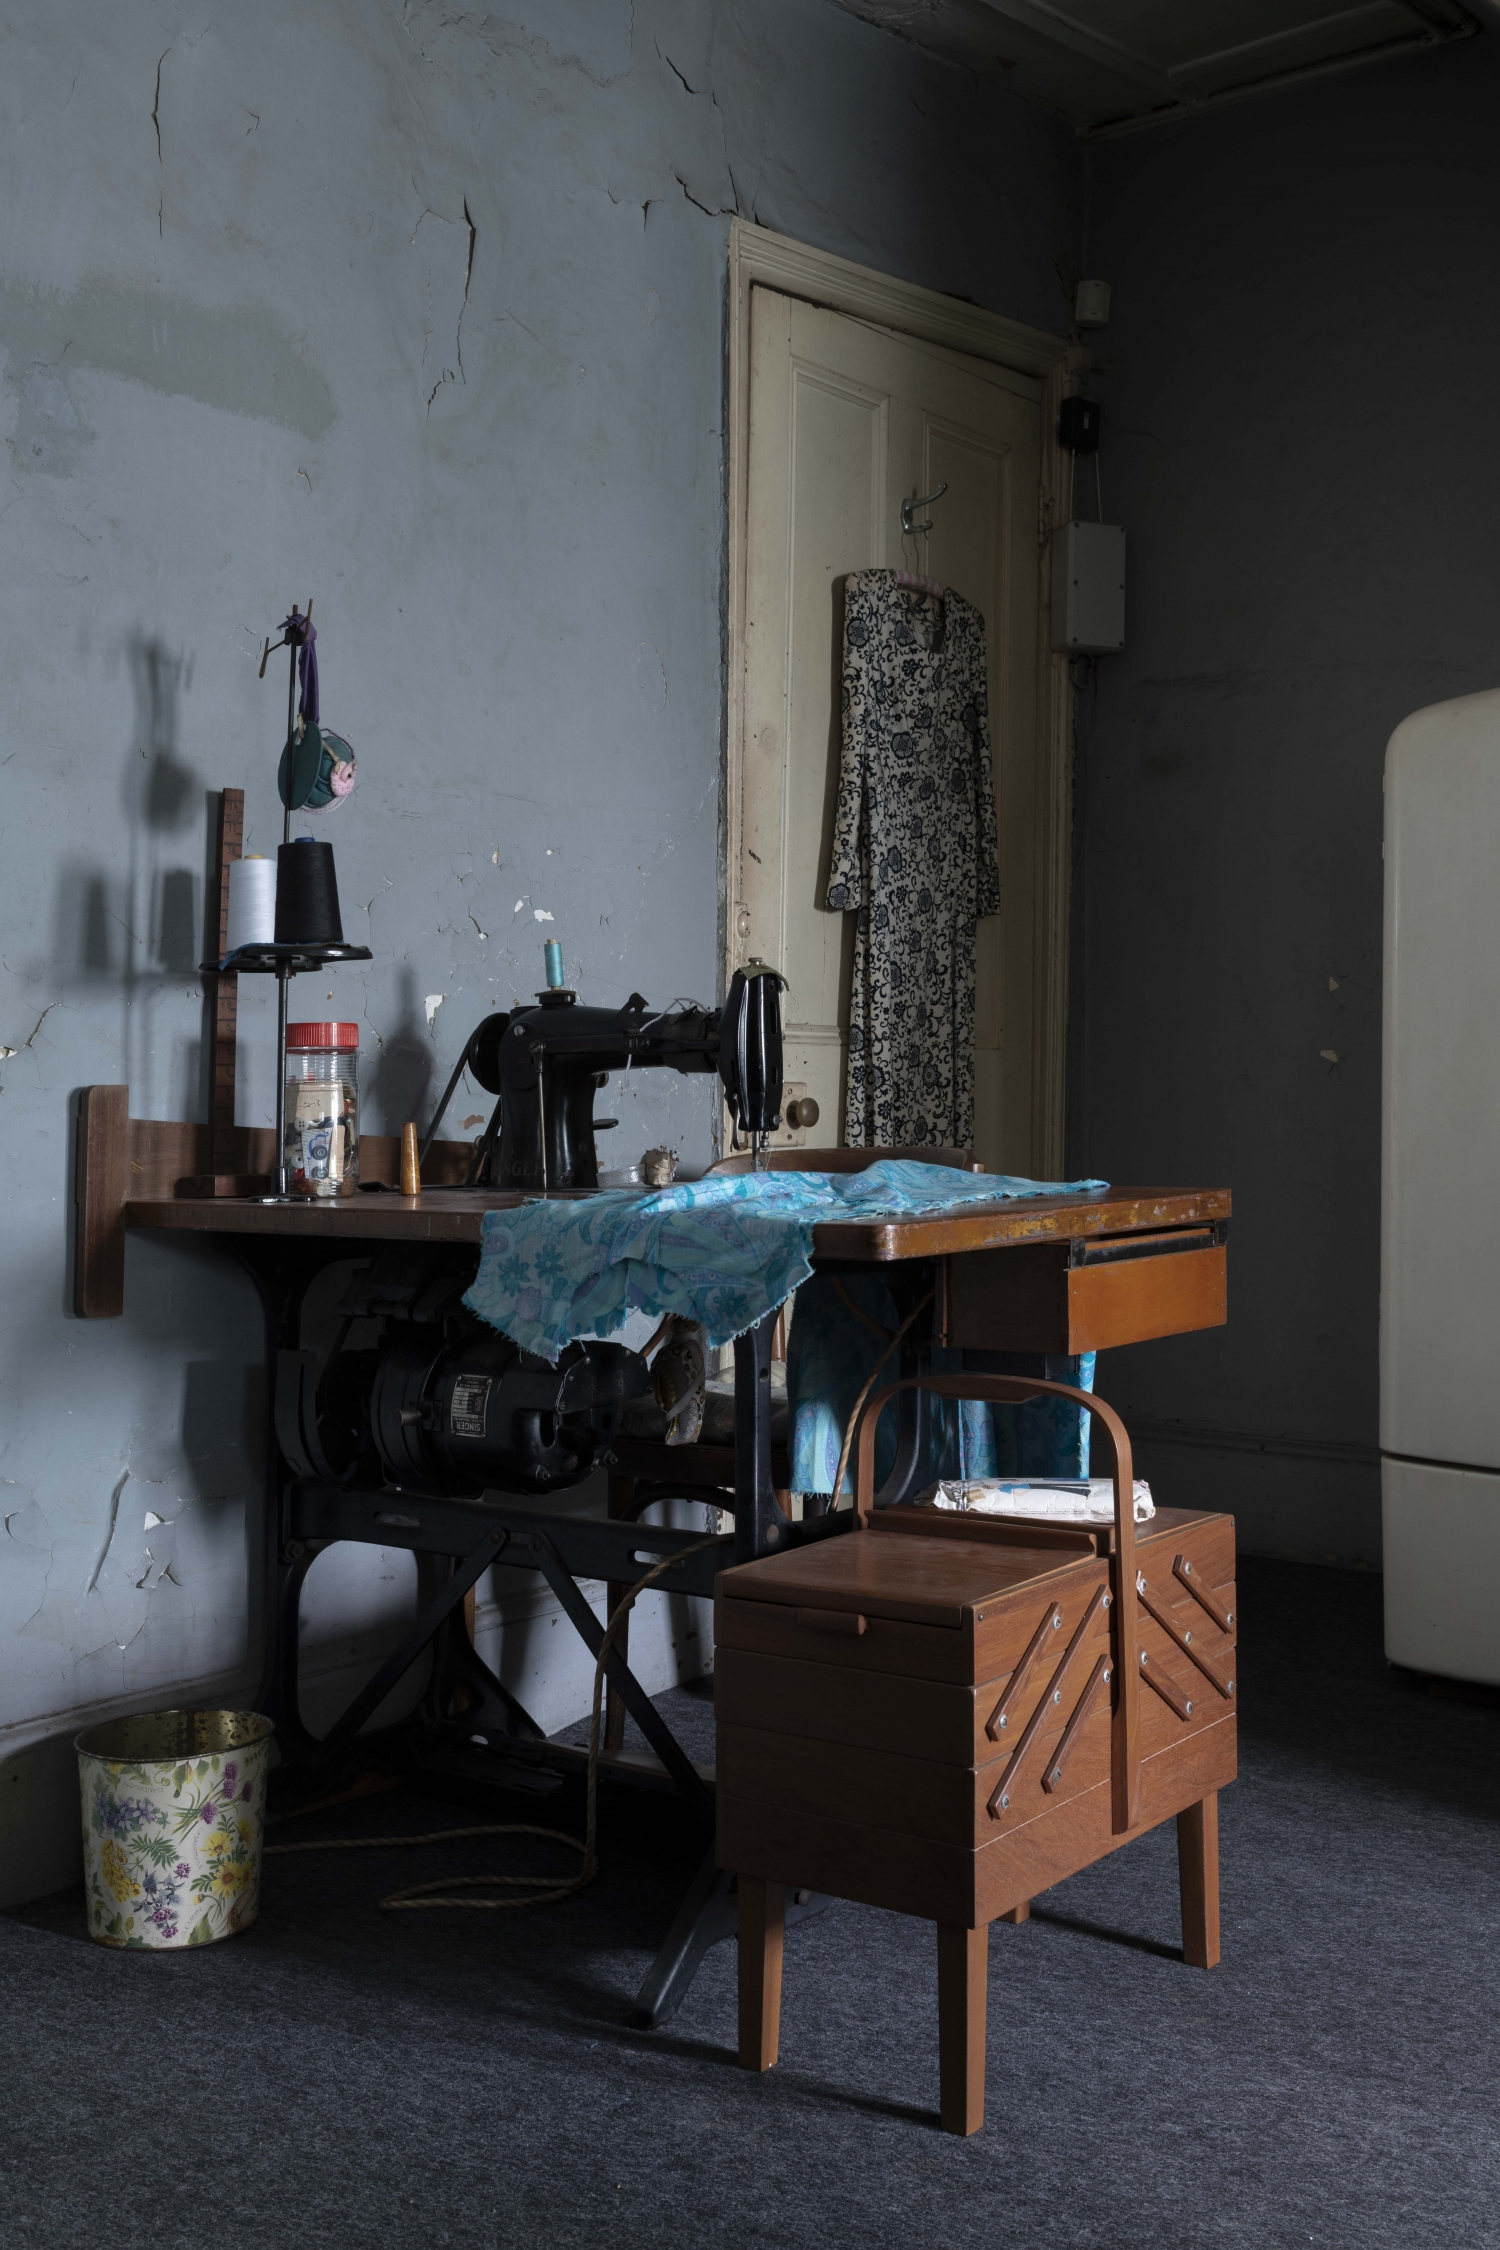 Sewing machine with assorted boxes, garments and floral bin, with dress hanging from door in background.